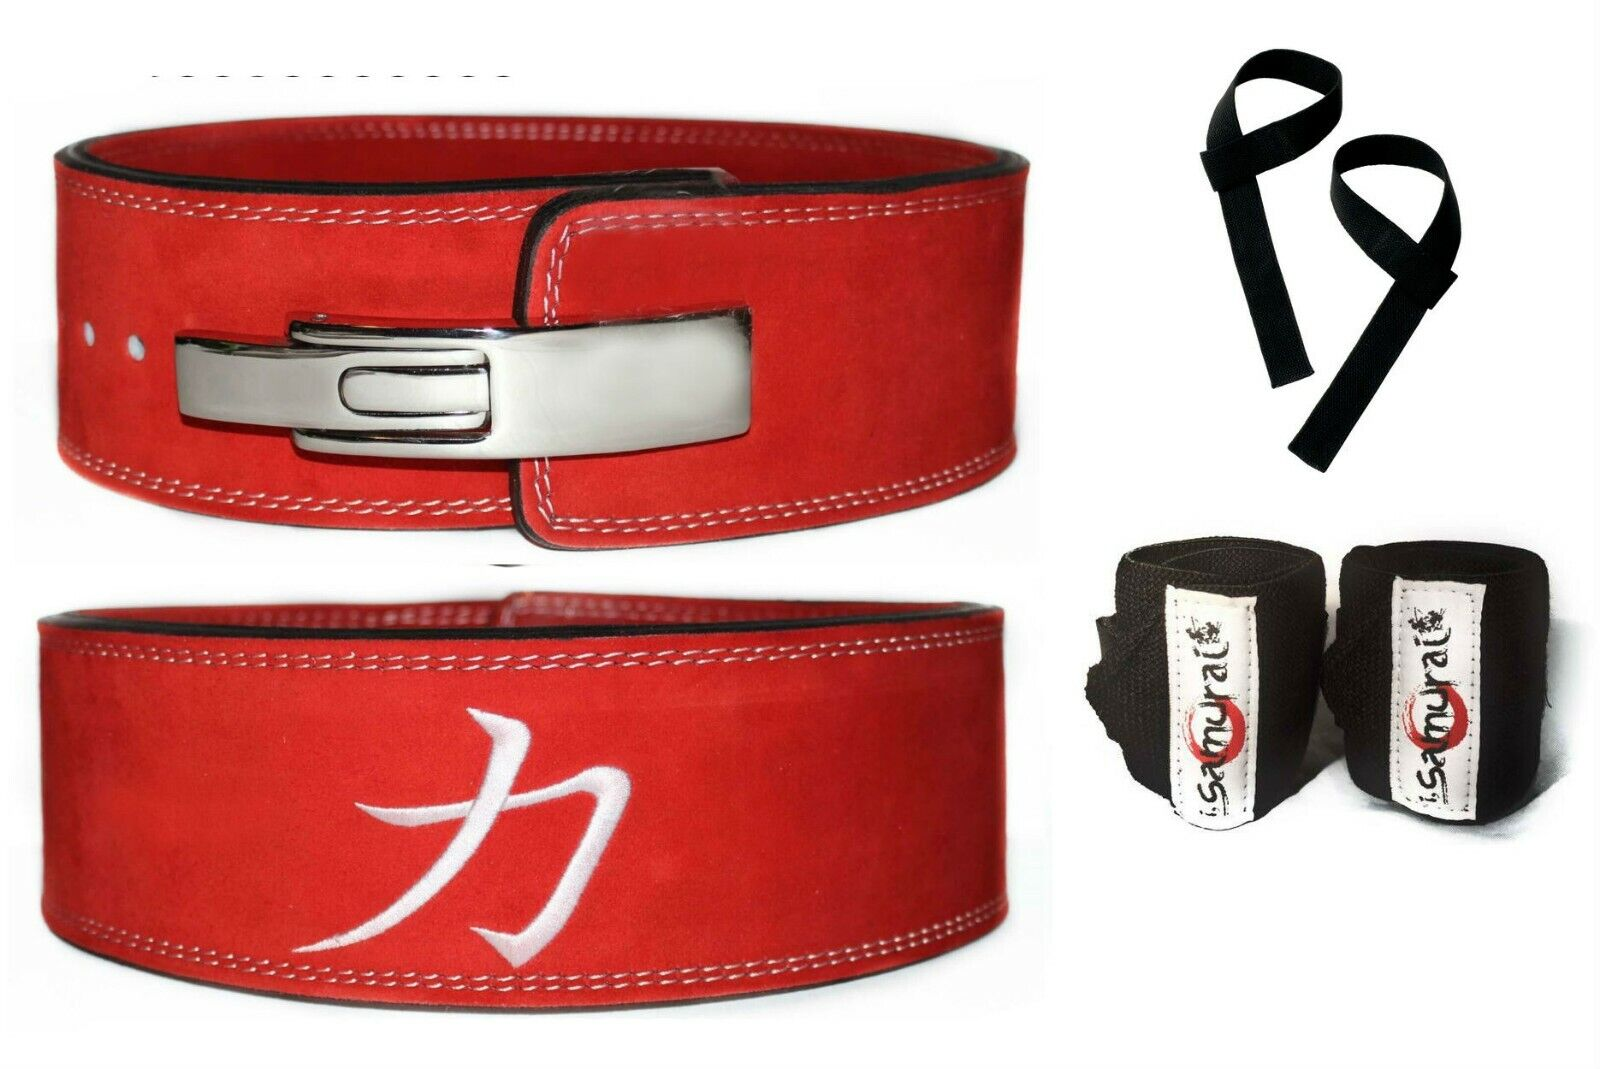 Strength Shop 10MM RED POWERLIFTING LEVER BELT (LARGE) + Wrist  Wraps + Straps  will make you satisfied